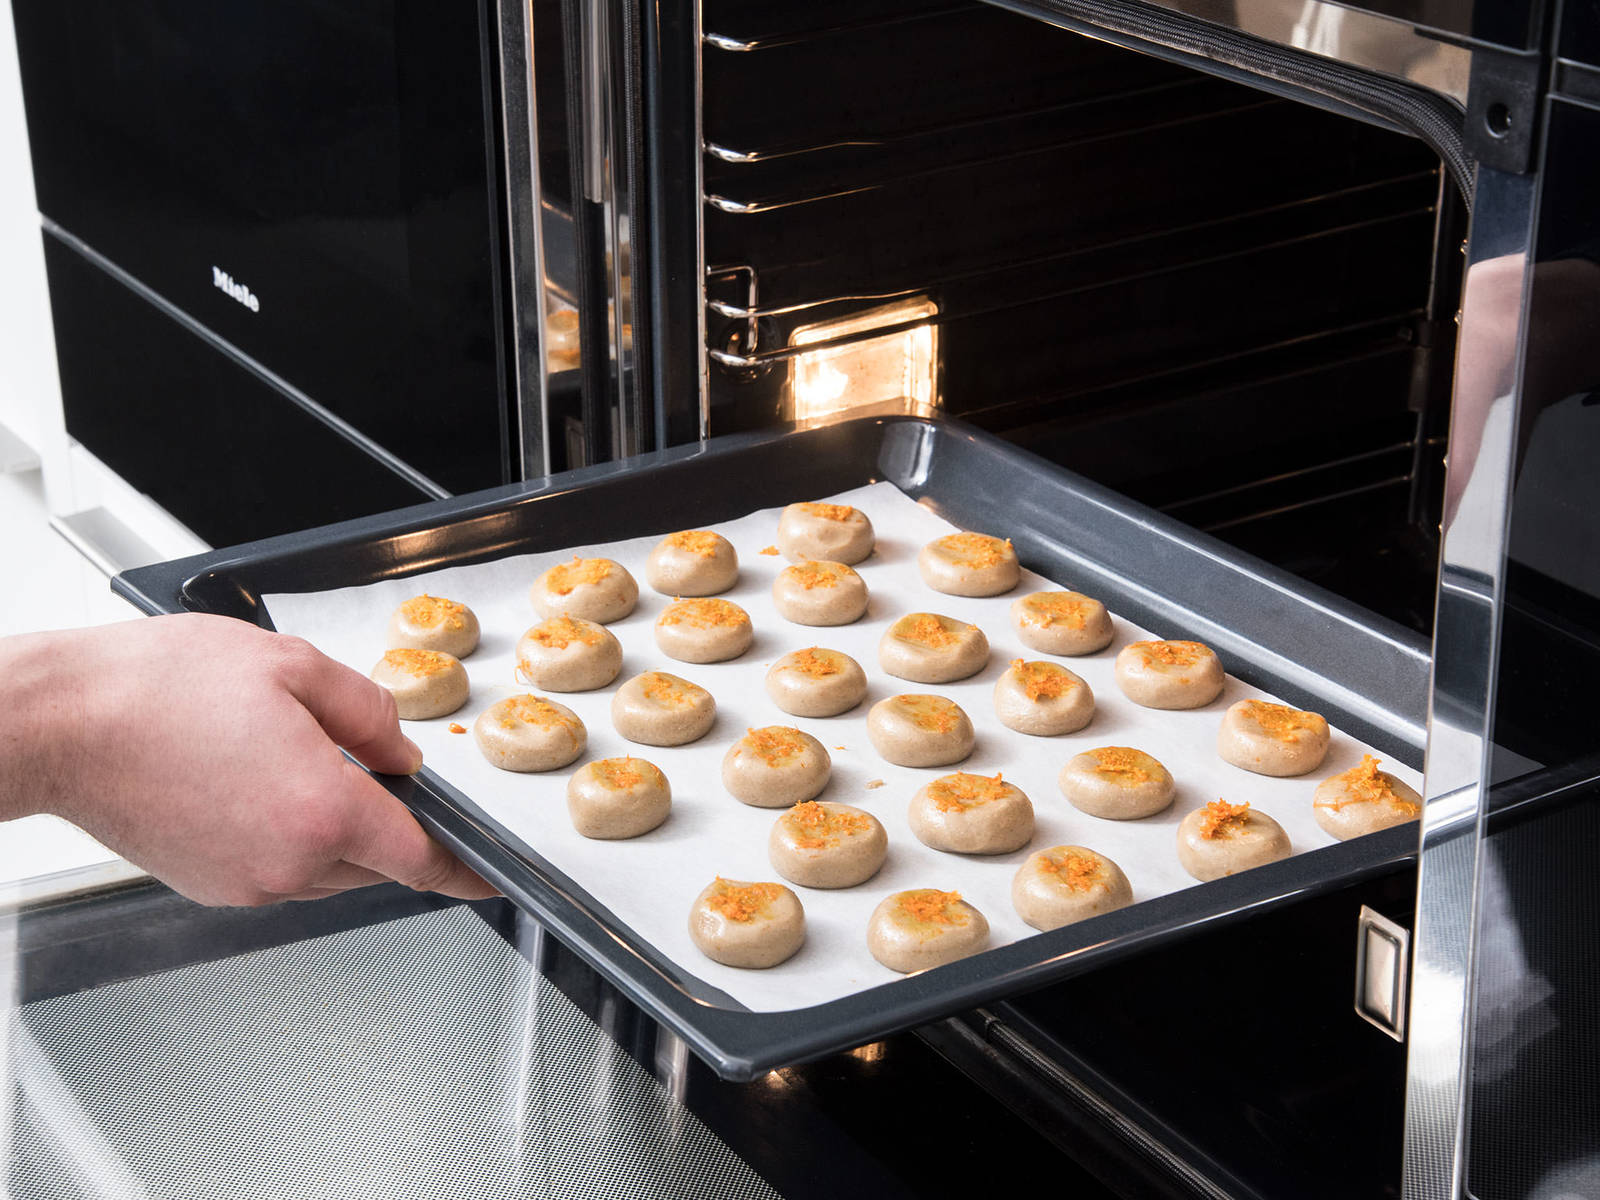 Form the dough into small balls (2 cm/0.8 in). Place them onto a parchment-lined baking sheet and press to flatten them slightly. Sprinkle remaining orange zest on top, and bake at 180°C/350°F for approx. 10 min. Enjoy!